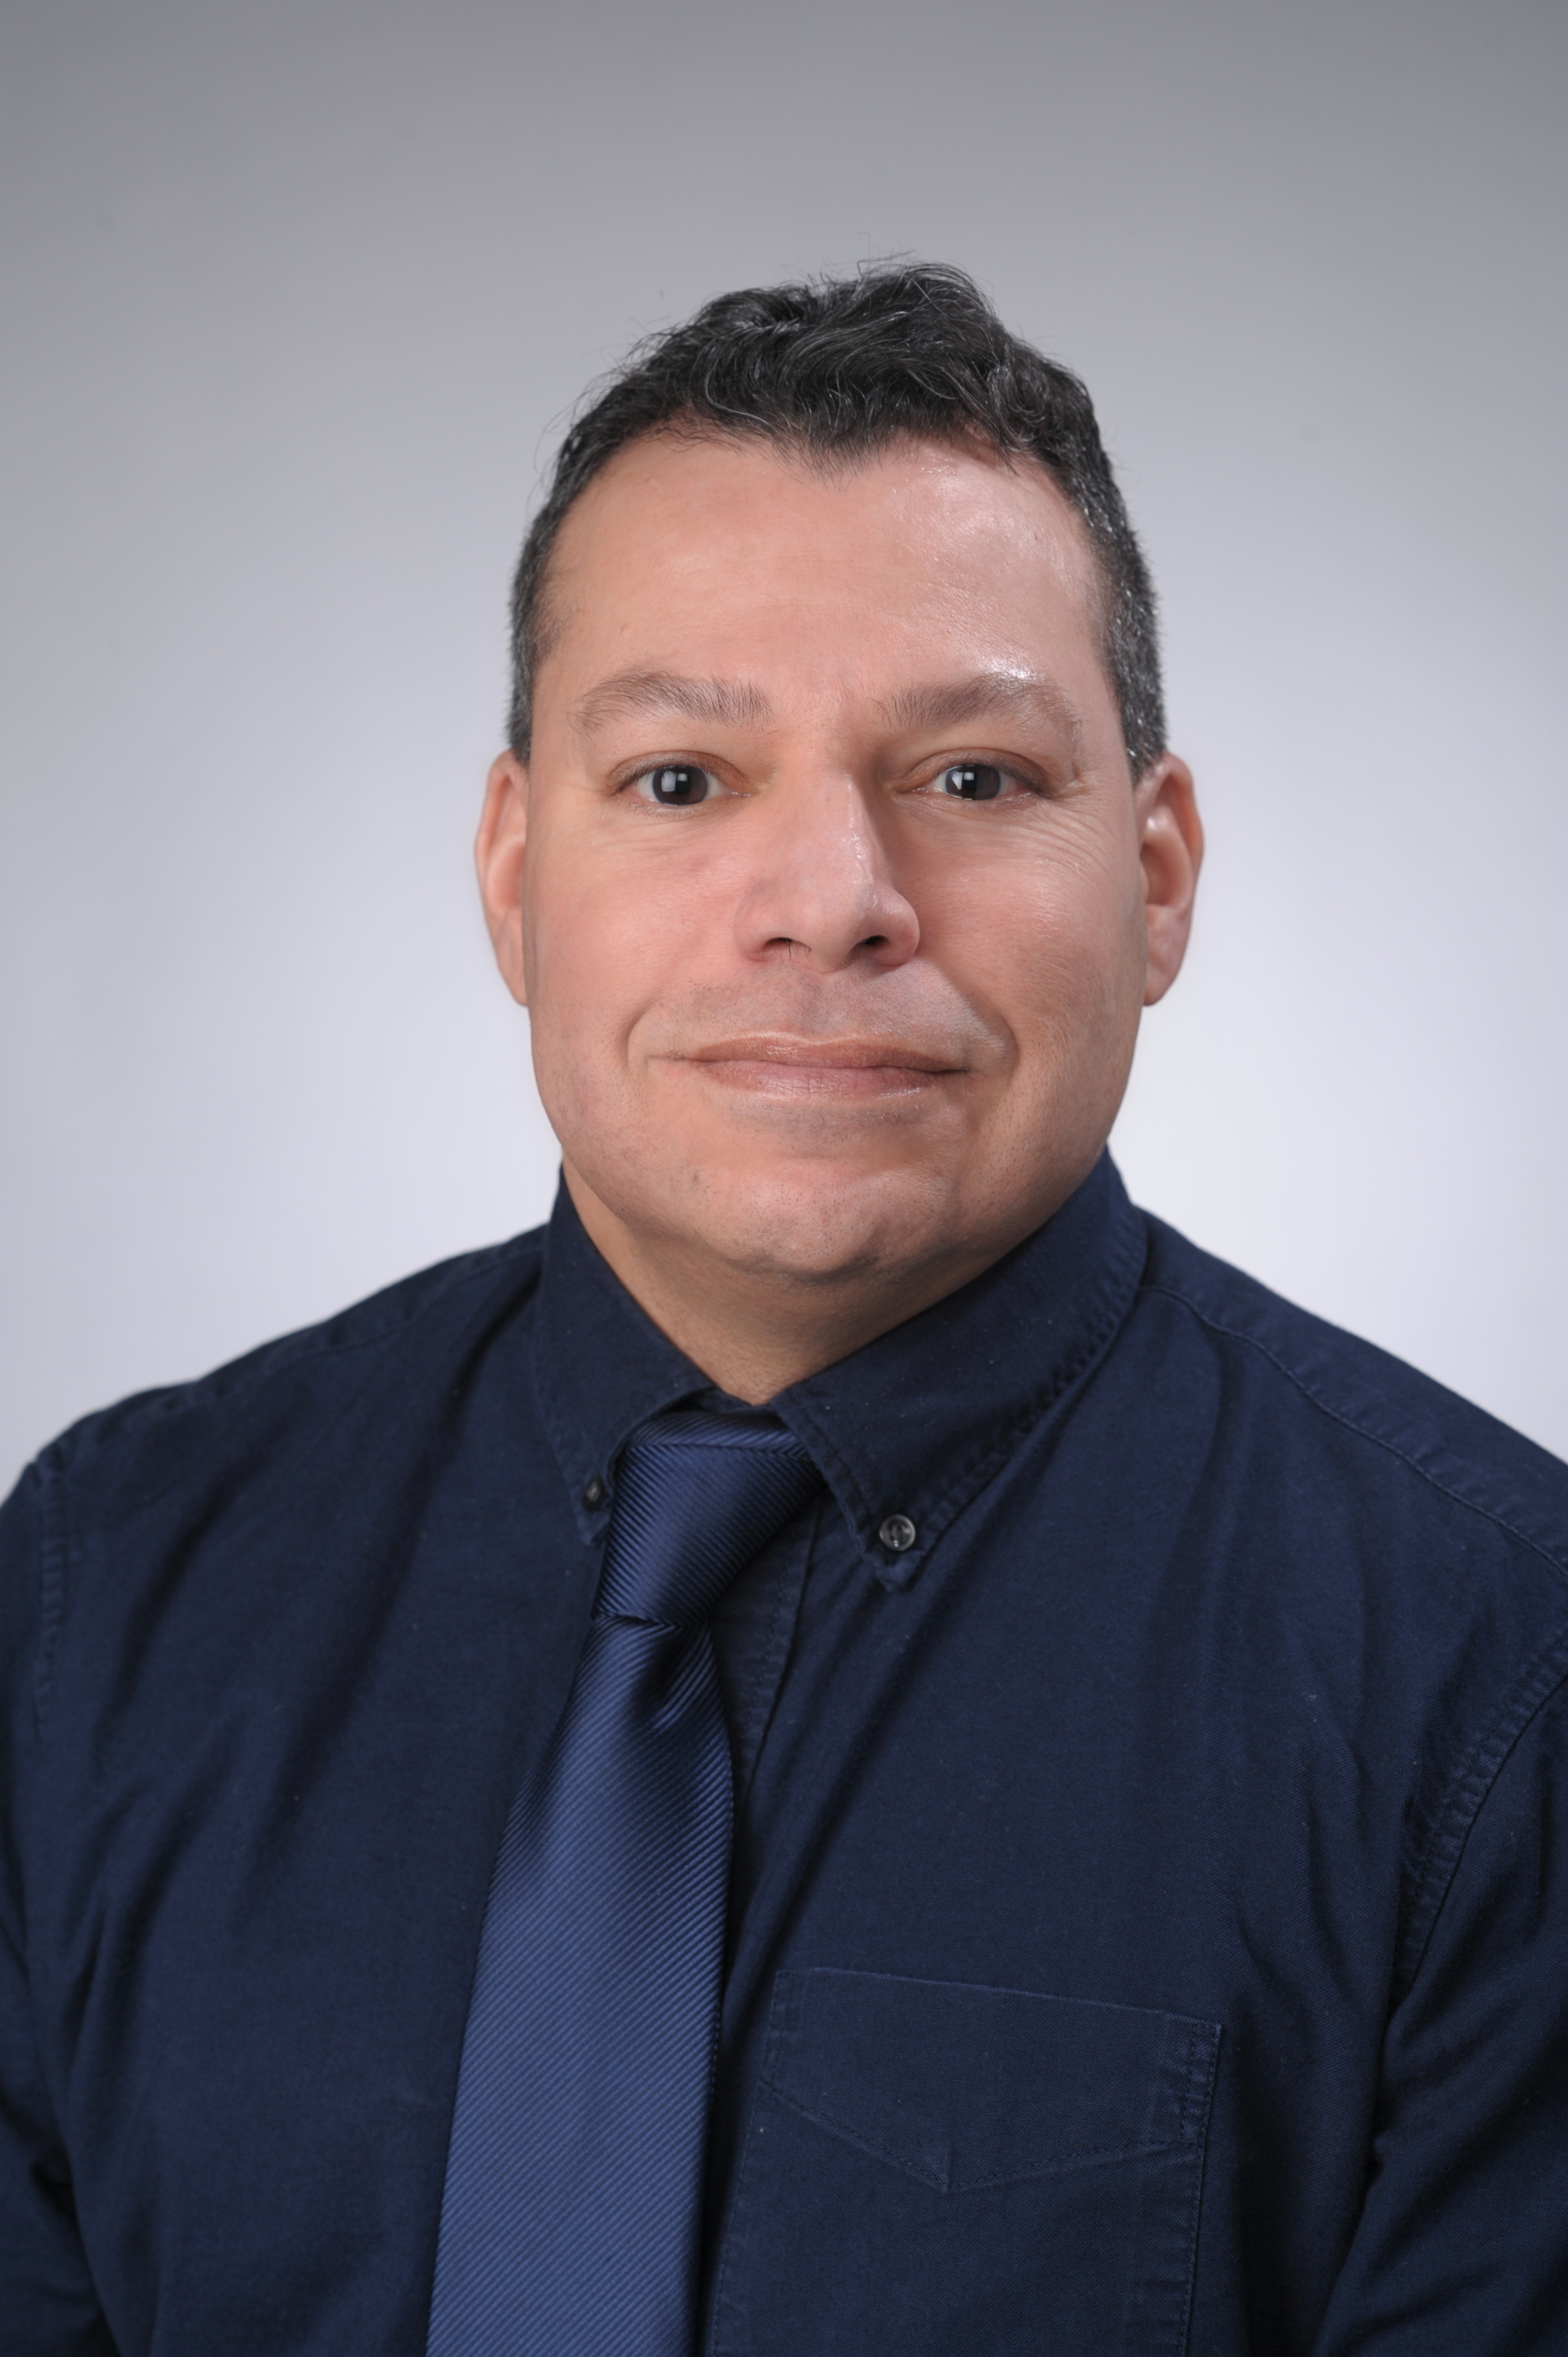 Patricio Jimenez is shown from the chest up, facing the camera, with his body slightly angled towards the right. He is wearing a blue dress shirt with a blue tie. There is a grey background